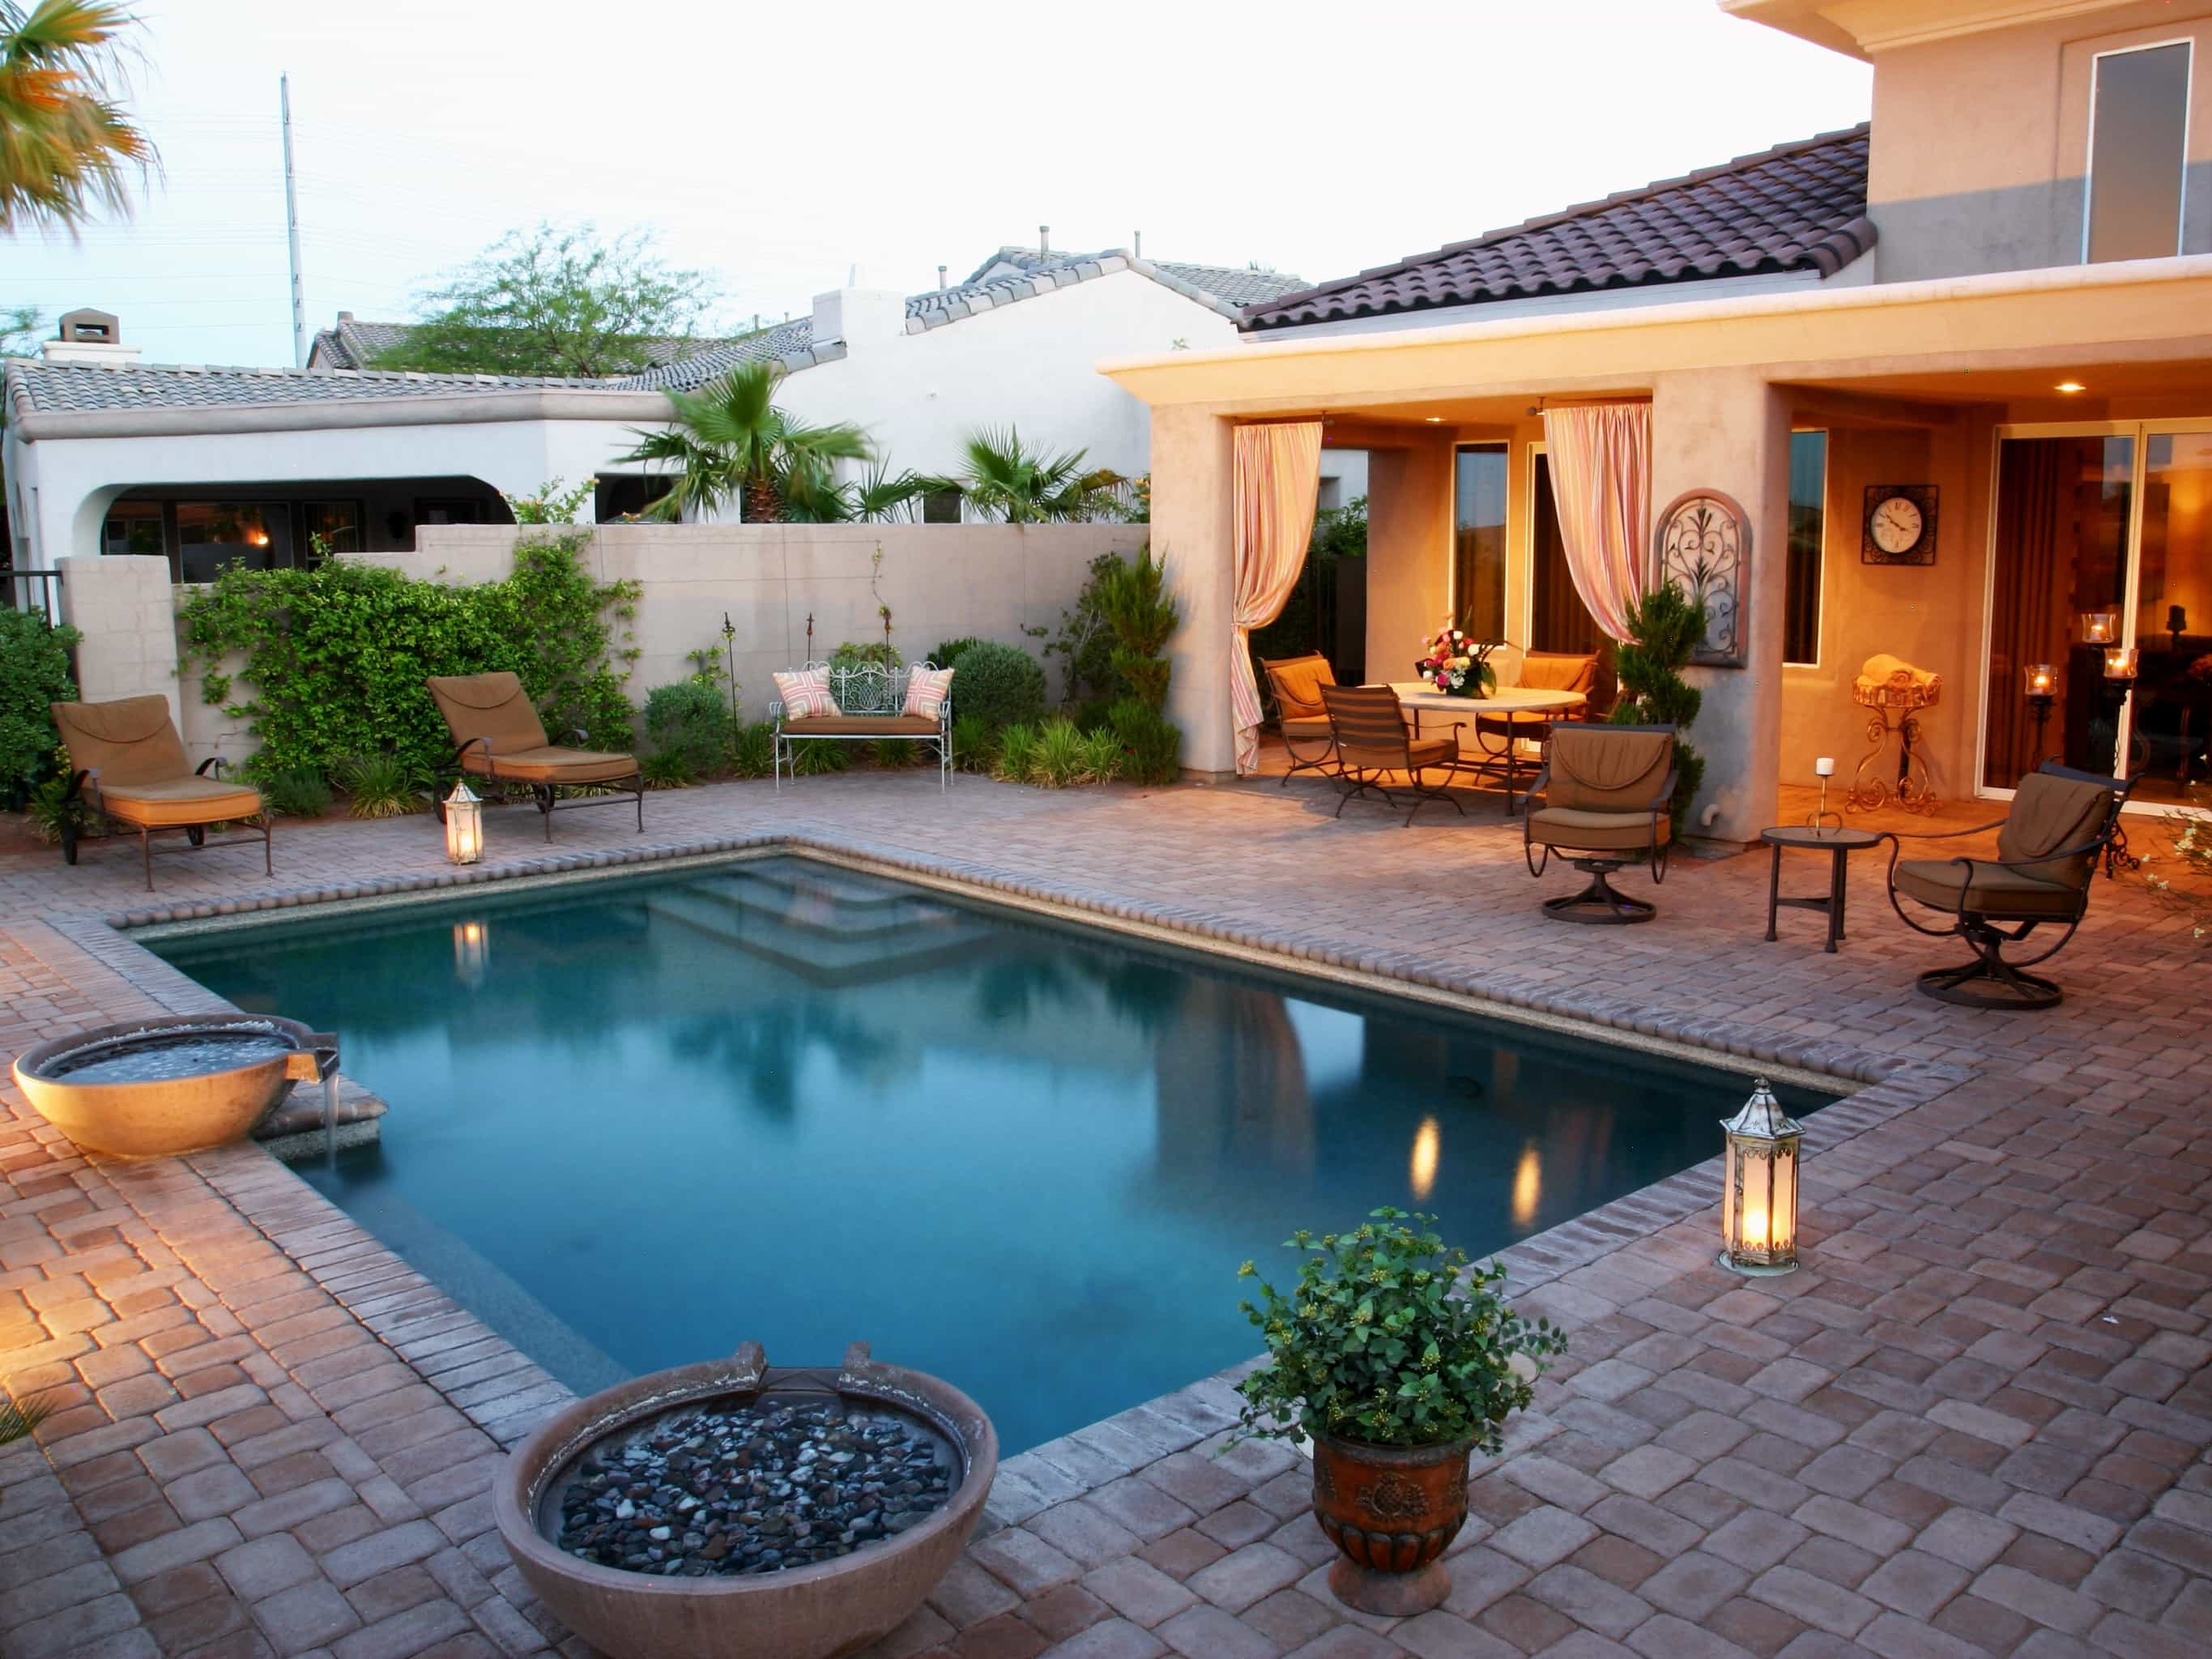 Swimming pool designs and plans home design ideas for Home pool ideas